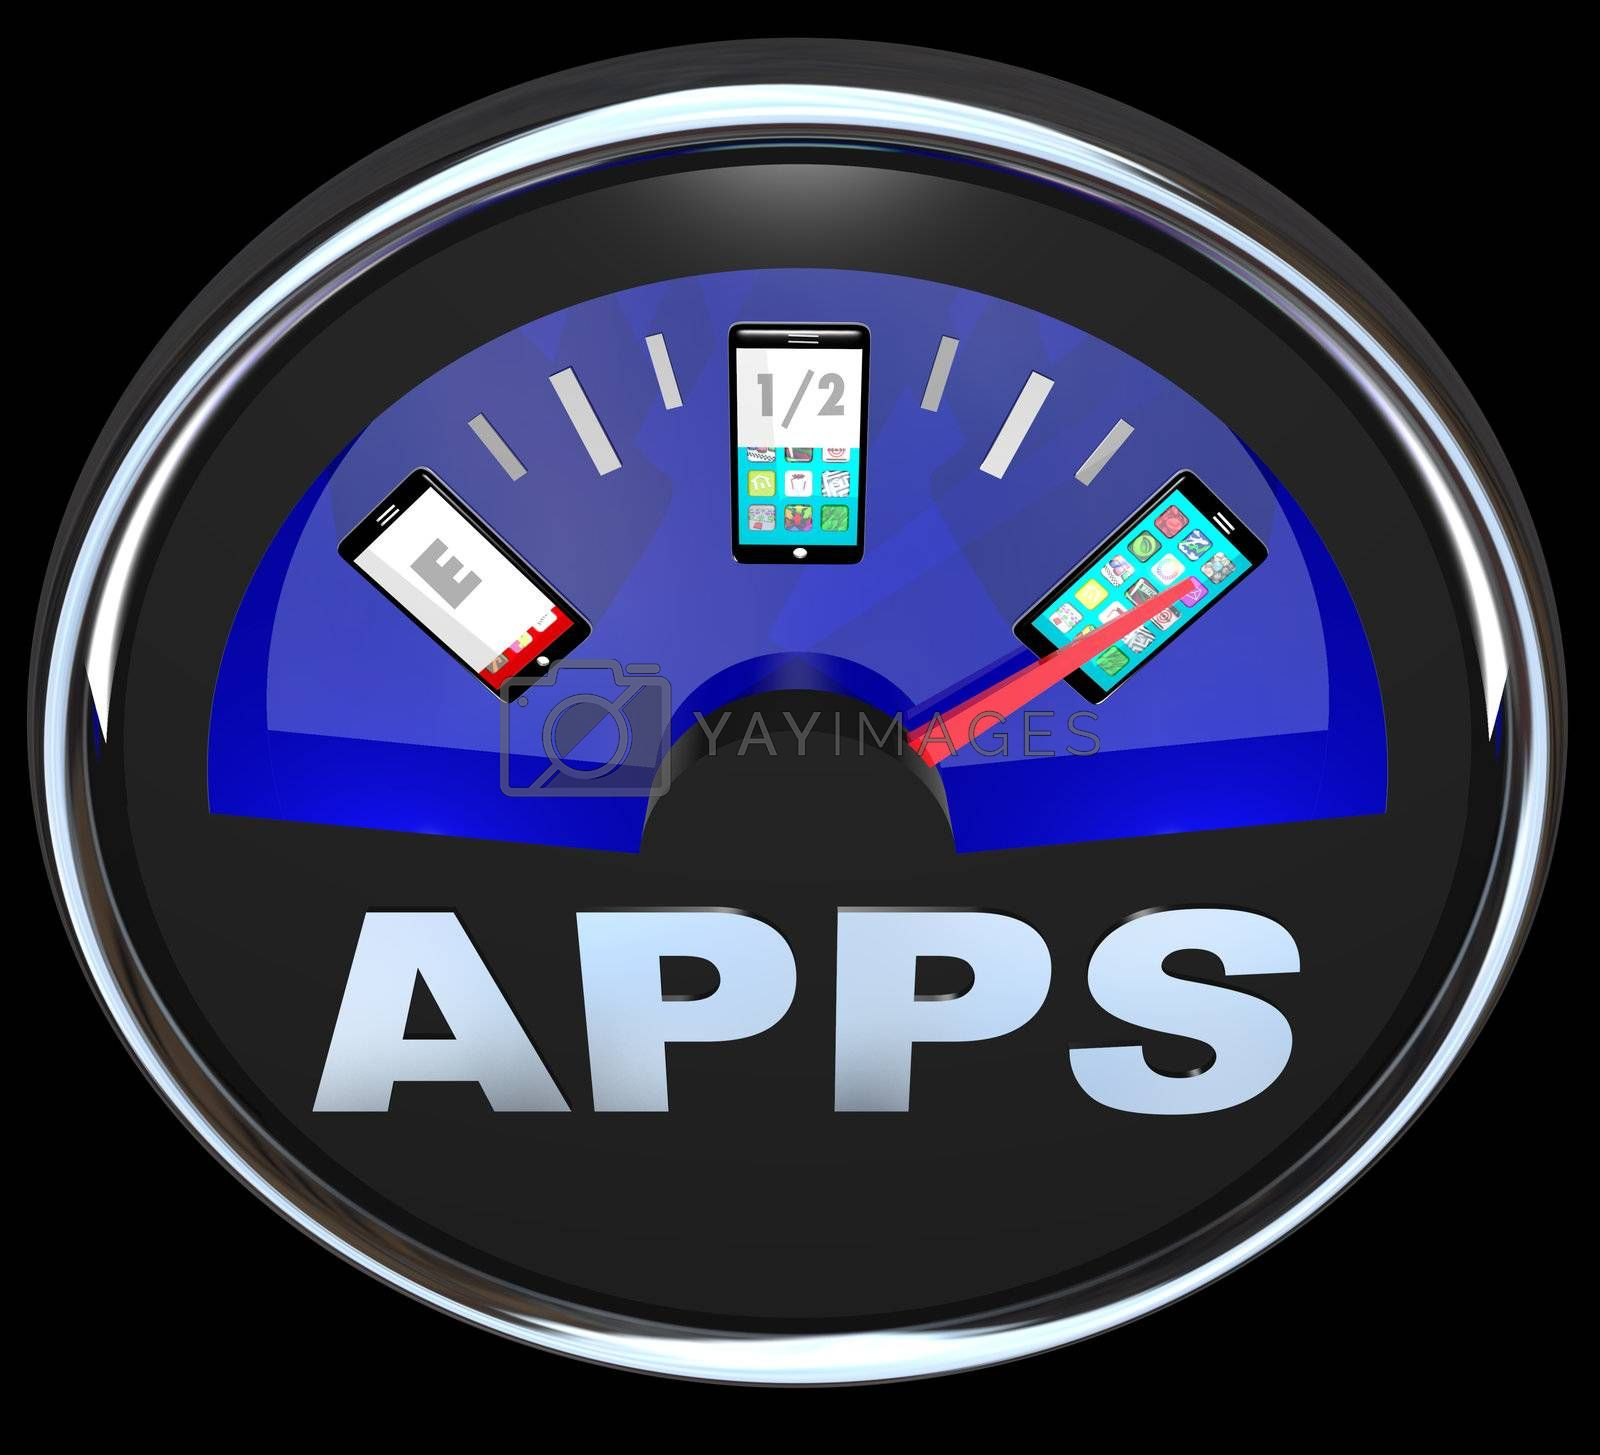 A fuel gauge measures the amount of apps in your smart phone, with the needle pointing to a mobile phone or other device that is full of applications